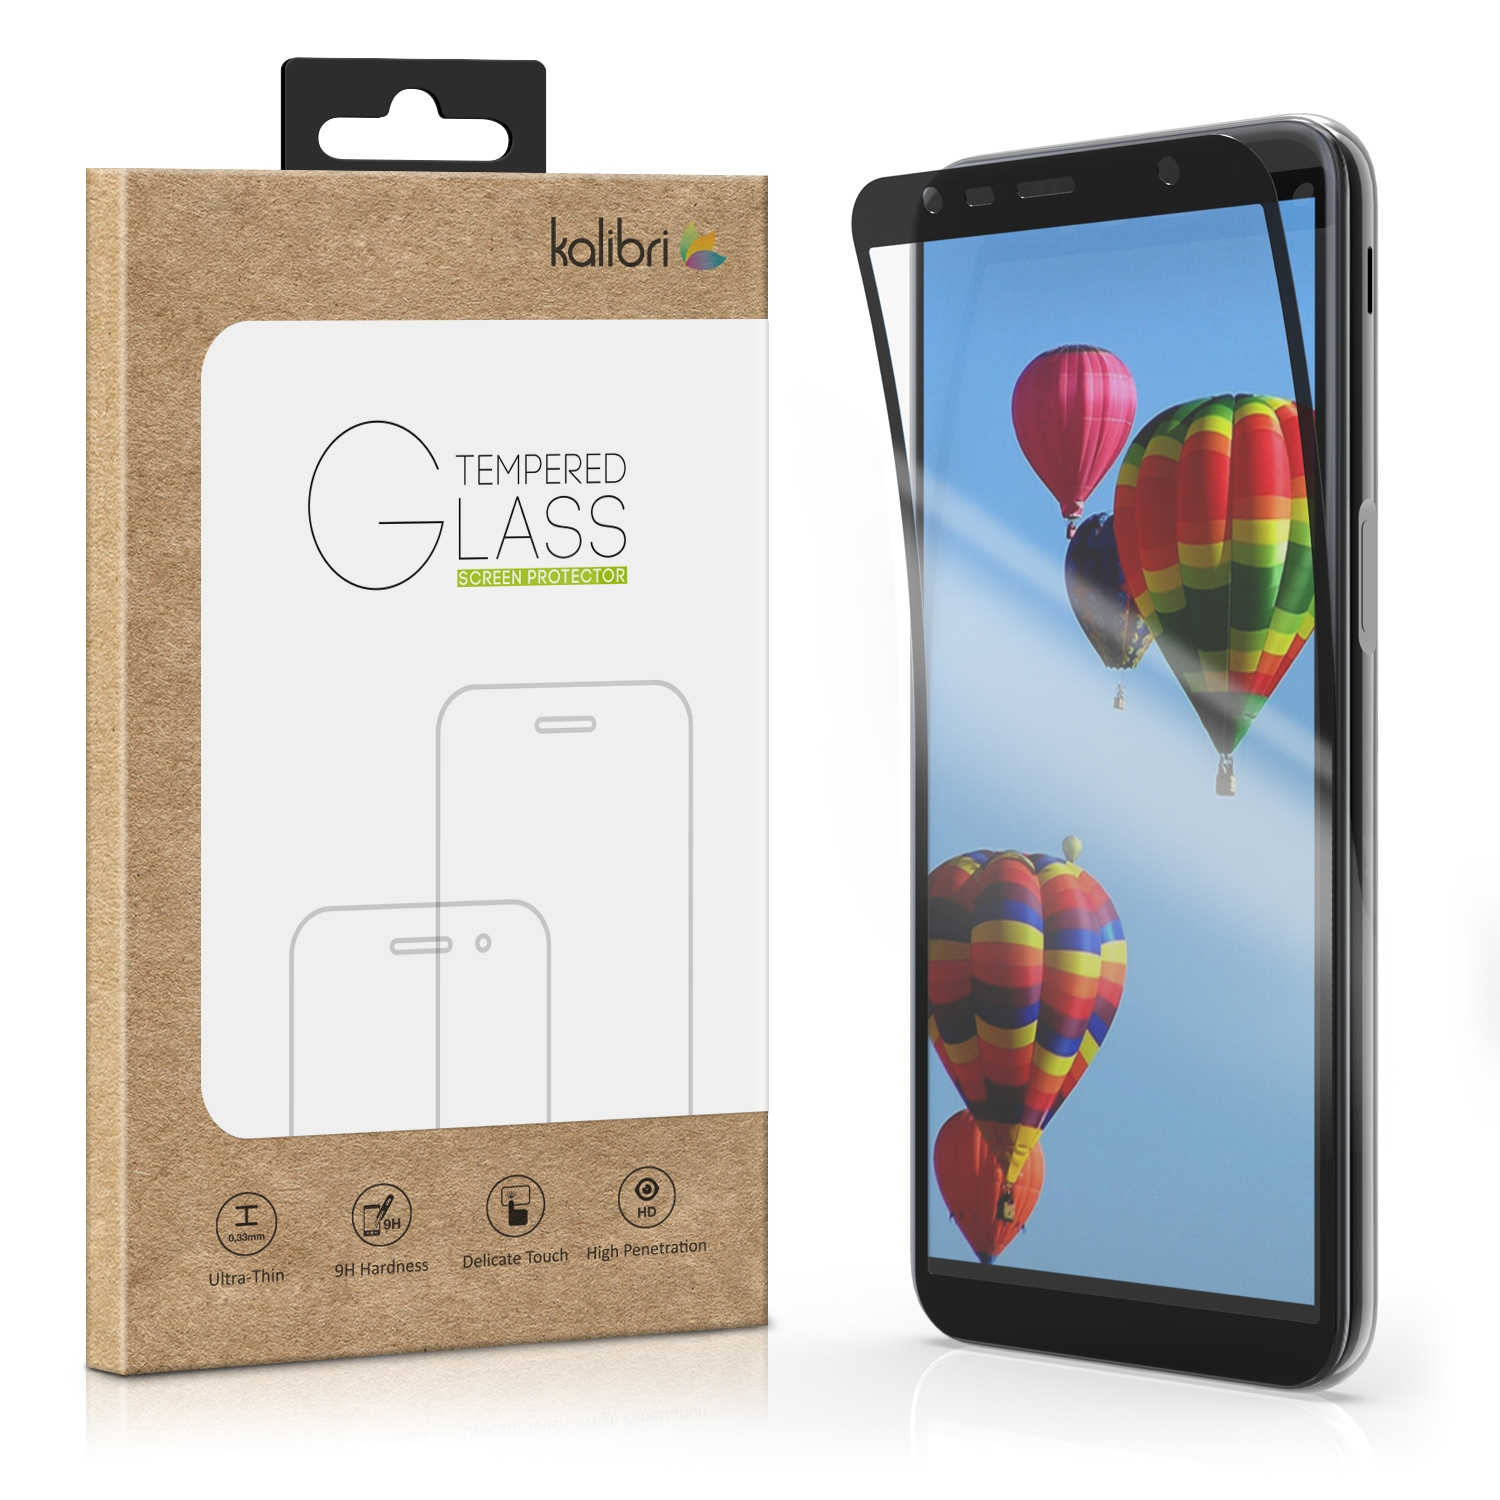 Kalibri Tempered Glass - Flexible Fullface Αντιχαρακτικό Γυαλί Οθόνης Samsung Galaxy J6 Plus 2018 - Black Frame (47374.01)